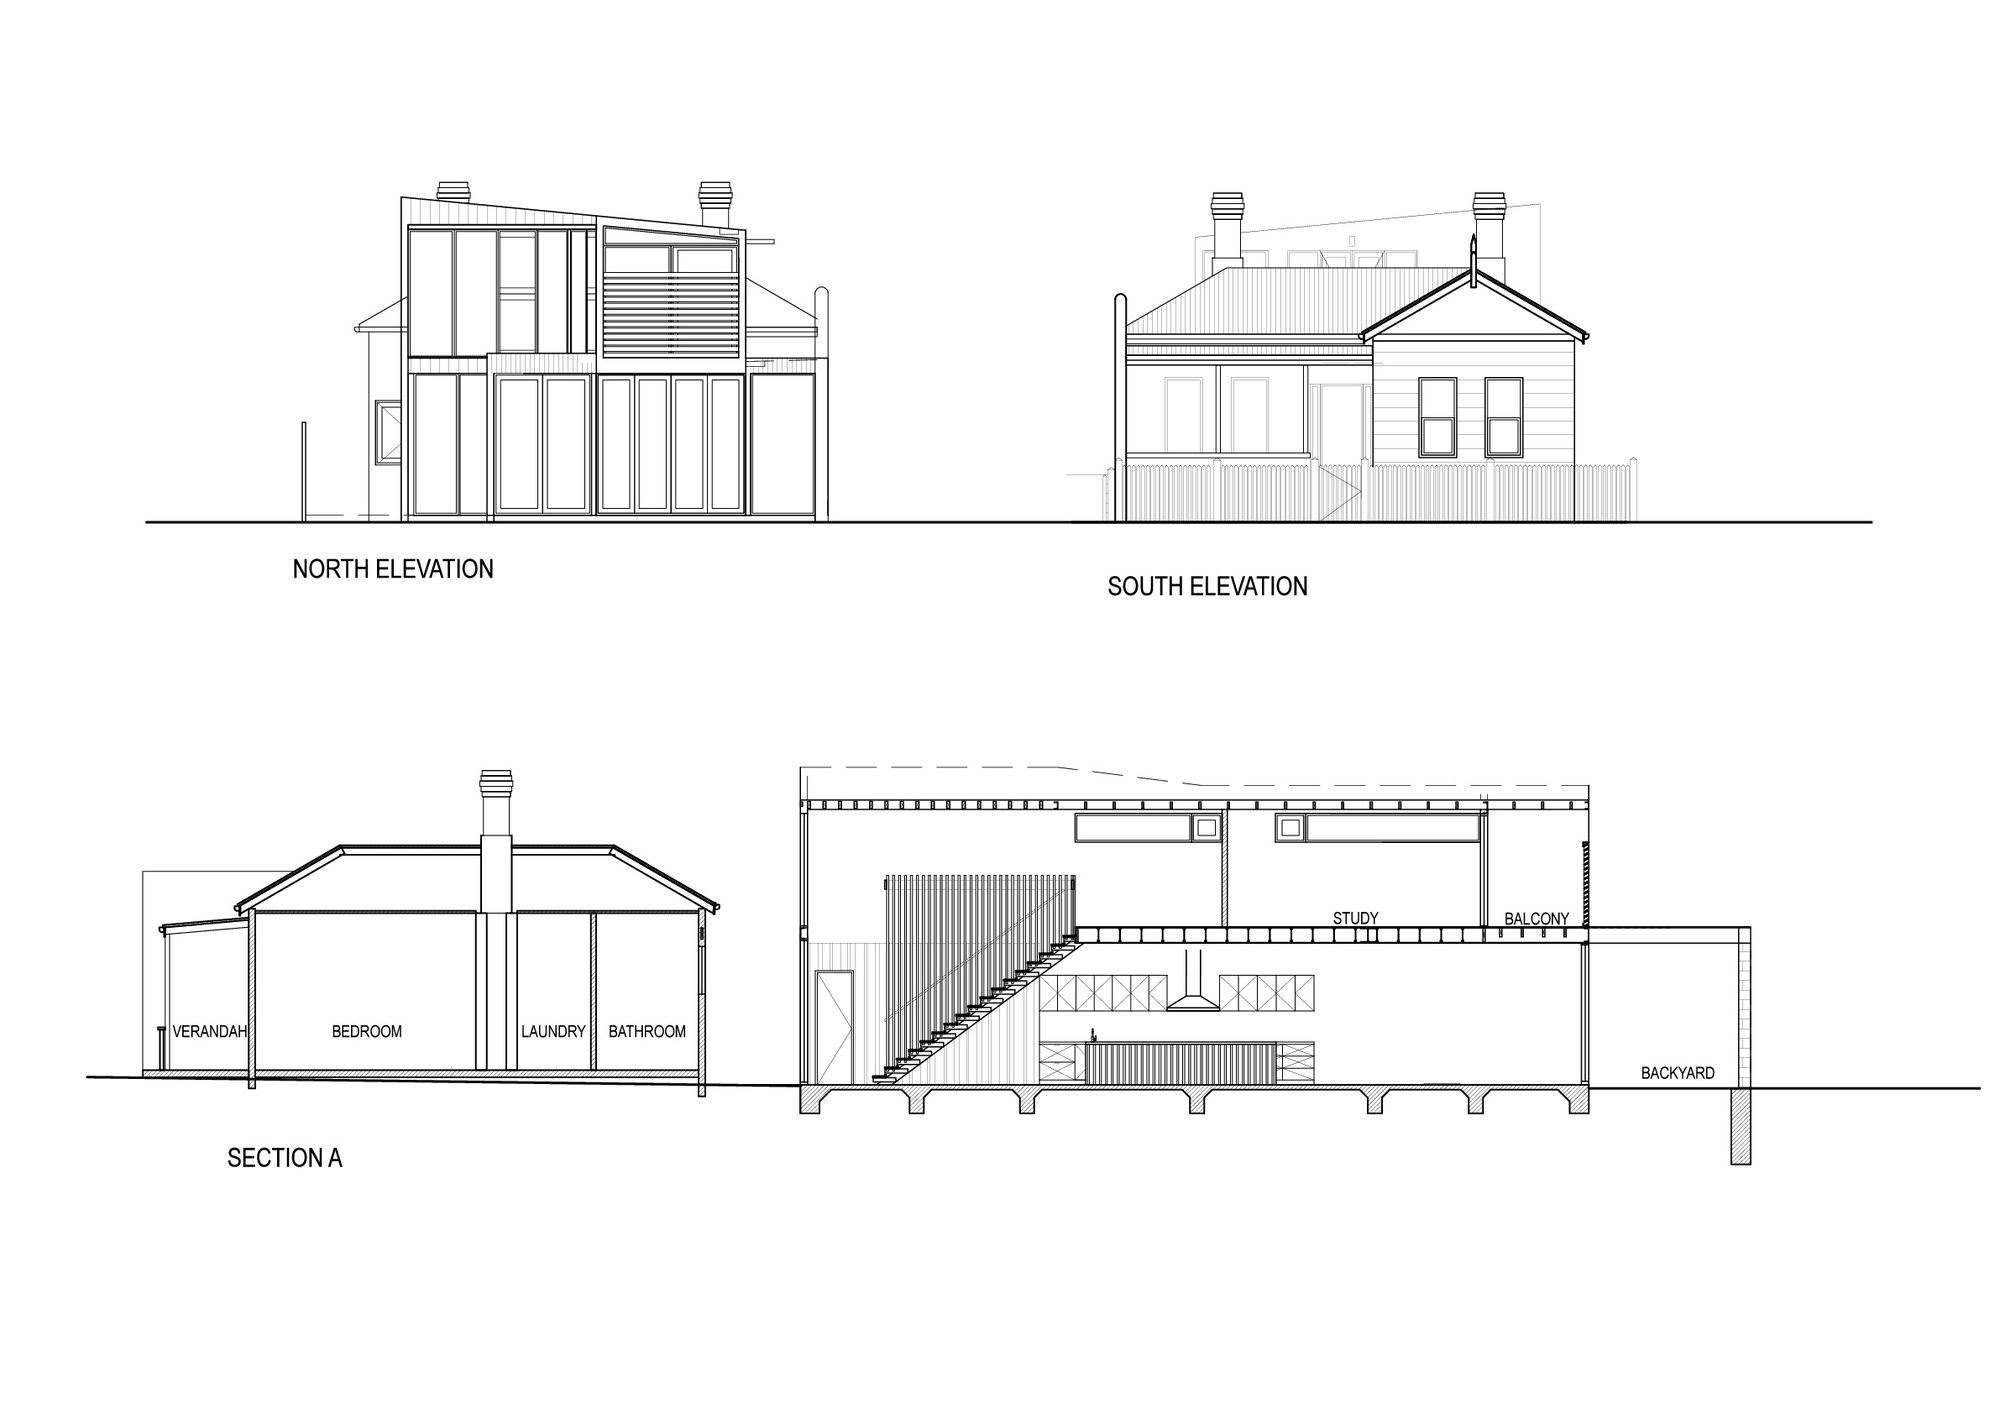 North N Home Plan And Elevation : Gallery of clifton hill house itn architects